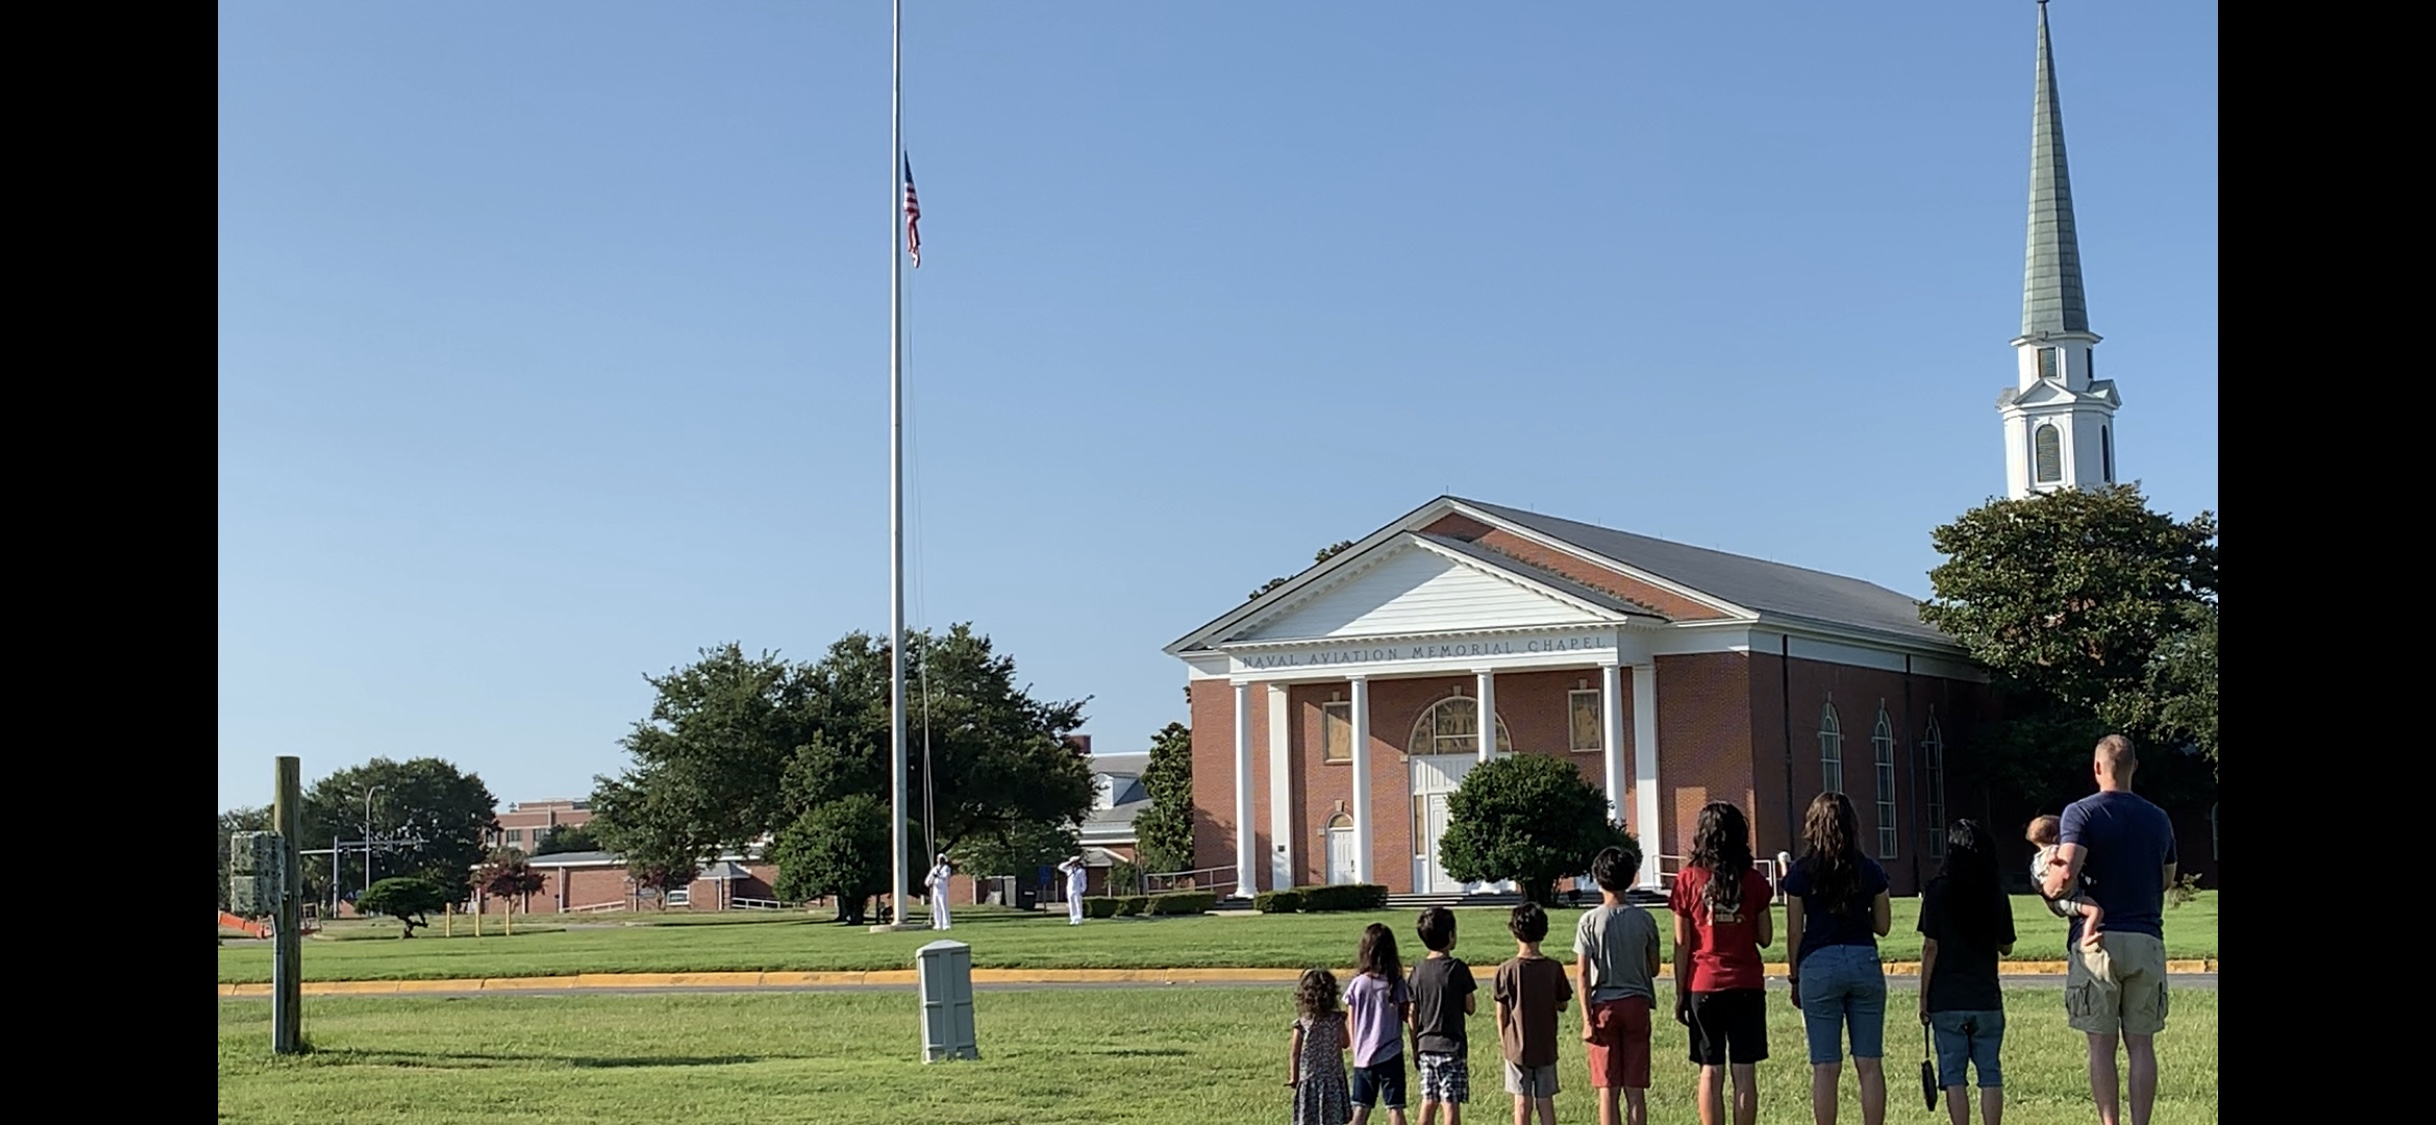 July 4, 2019 - Standing as a Military familY with our hands over our hearts As our (American) flag is raised to our national anthem (the star spangled banner) near our home 🇺🇸 (Photo by: TIm & Franicia White)